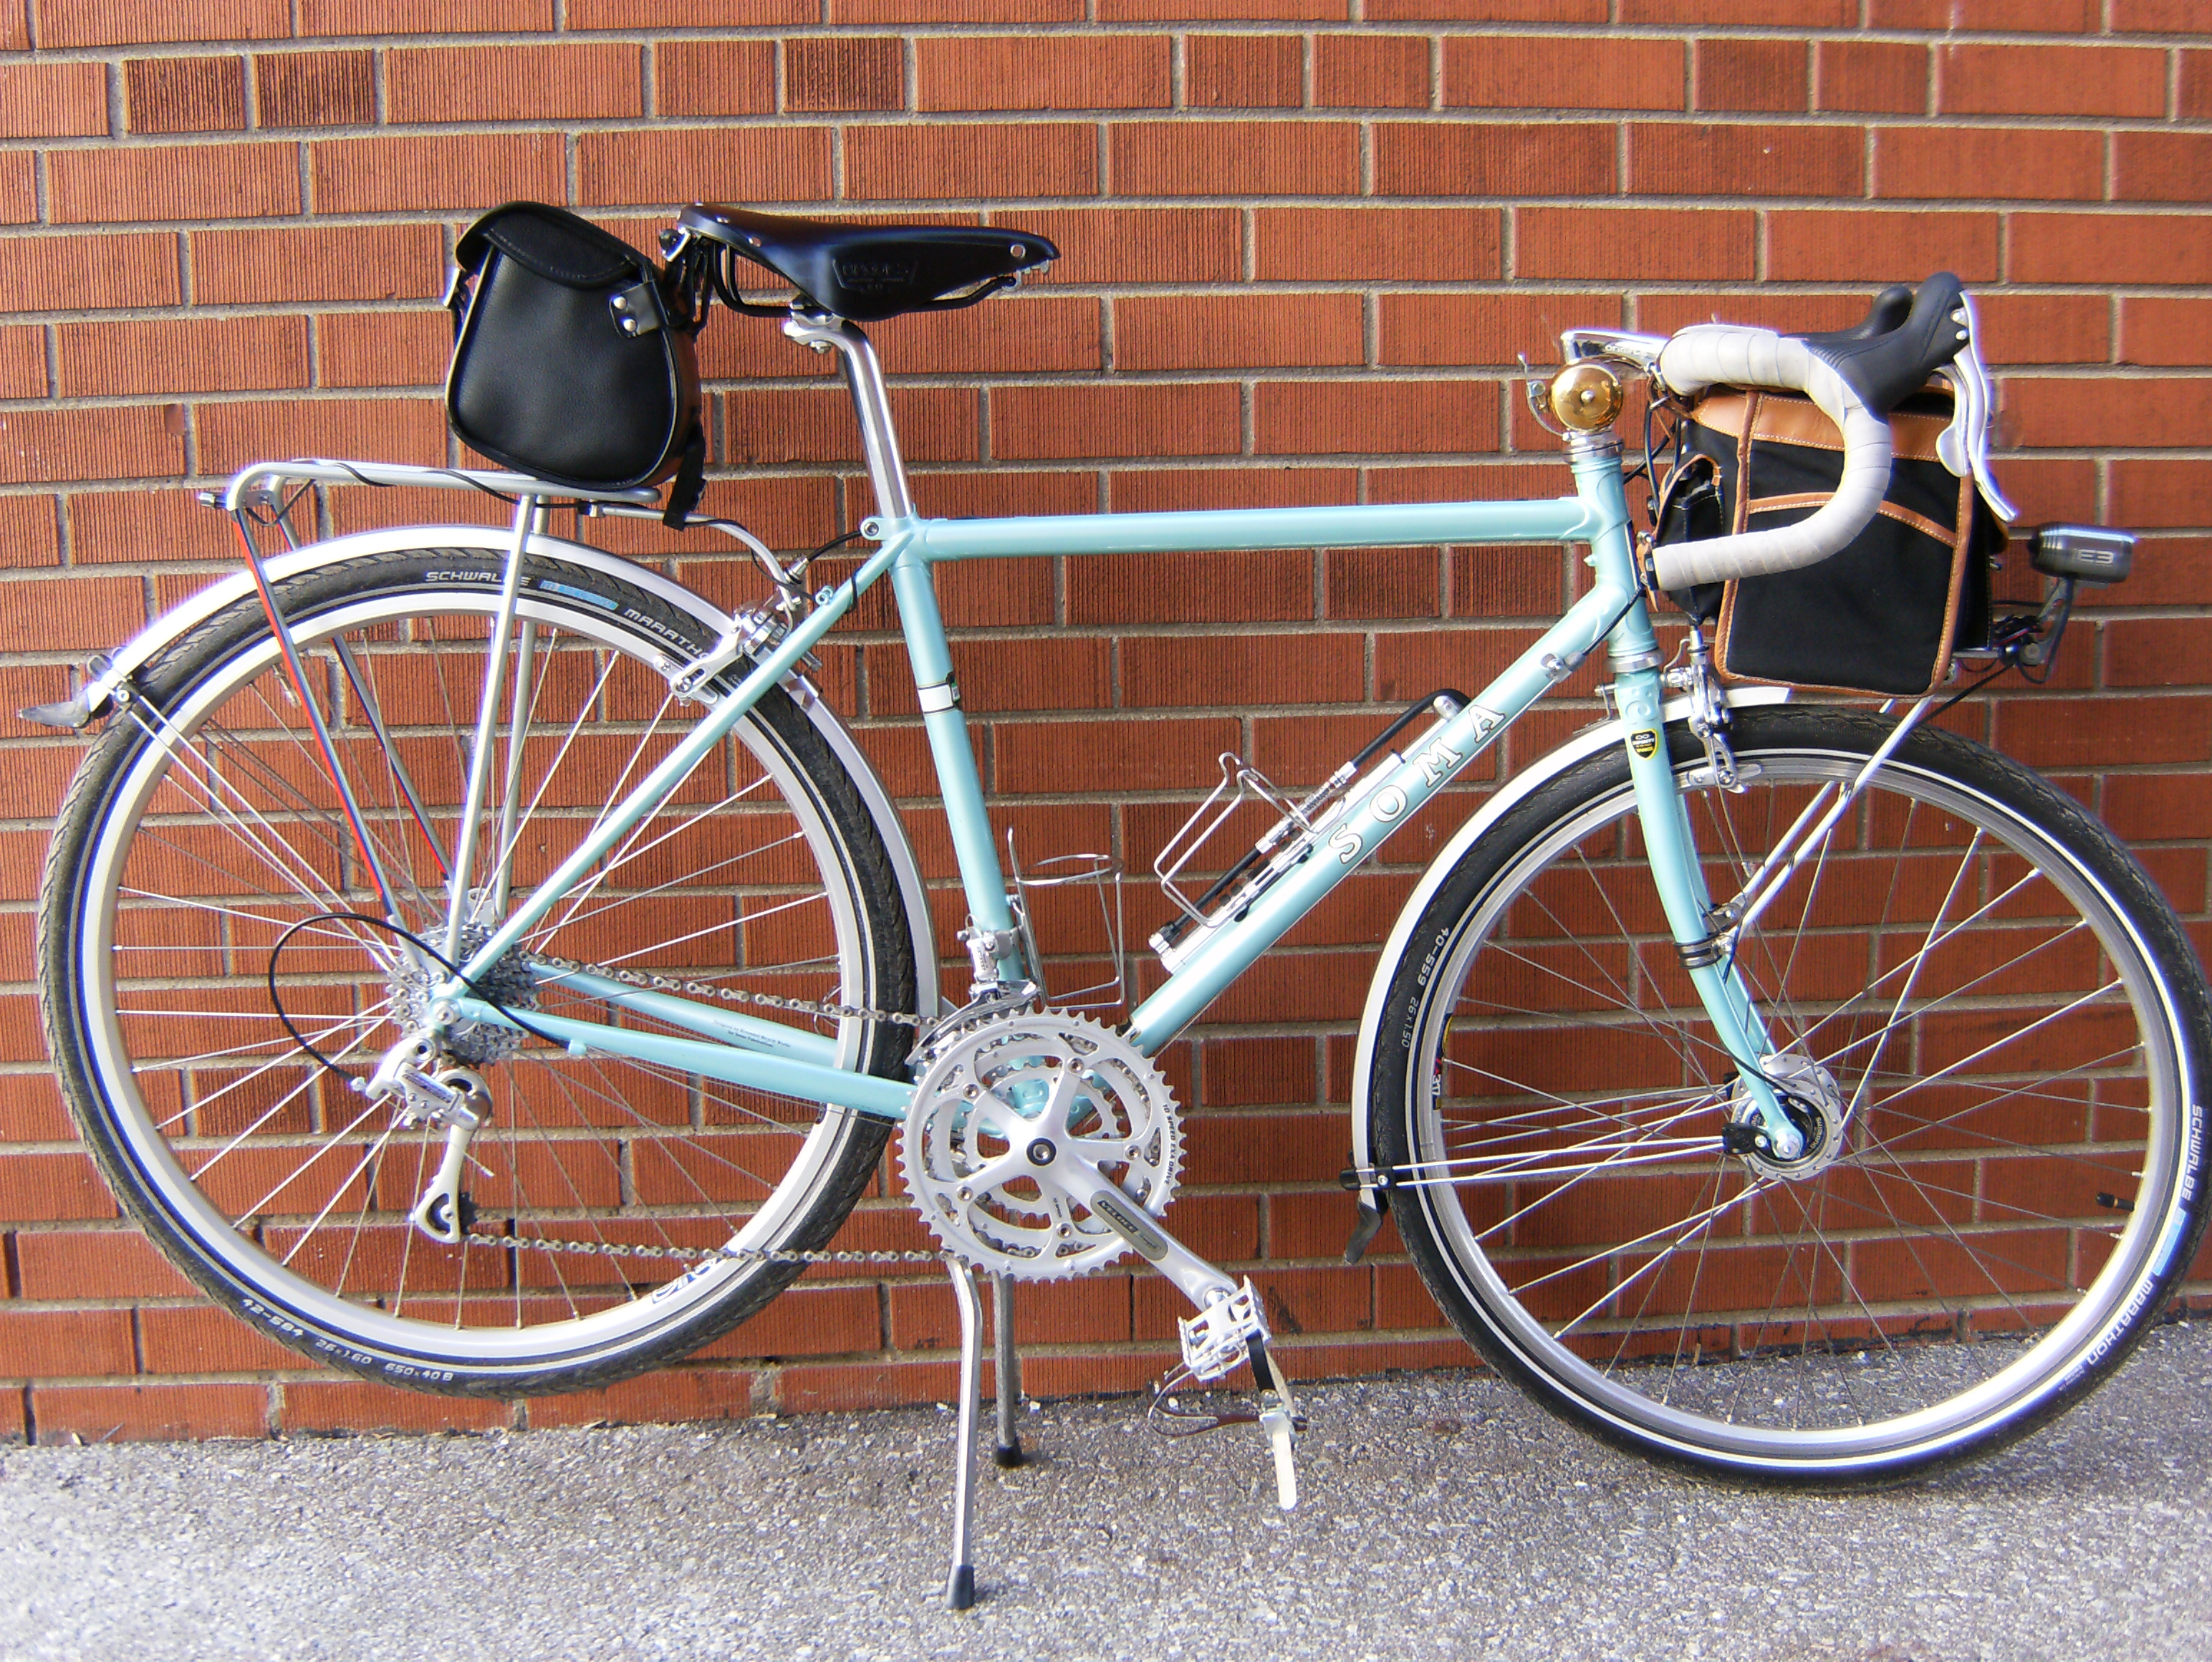 File:Light Touring Bicycle.JPG - Wikimedia Commons